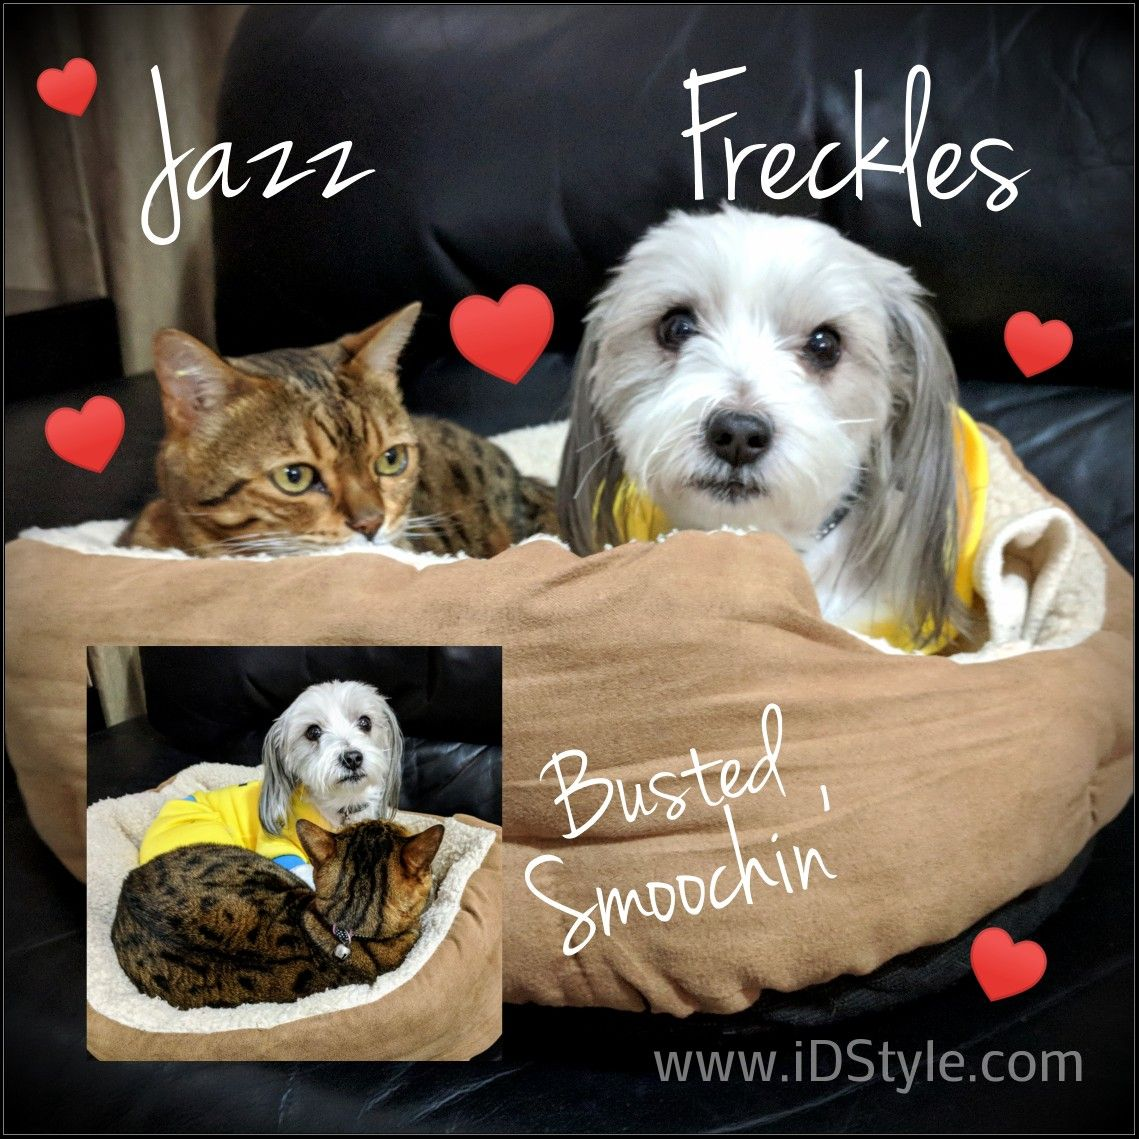 Jazz and Freckles busted smooching... Freckles, Busted